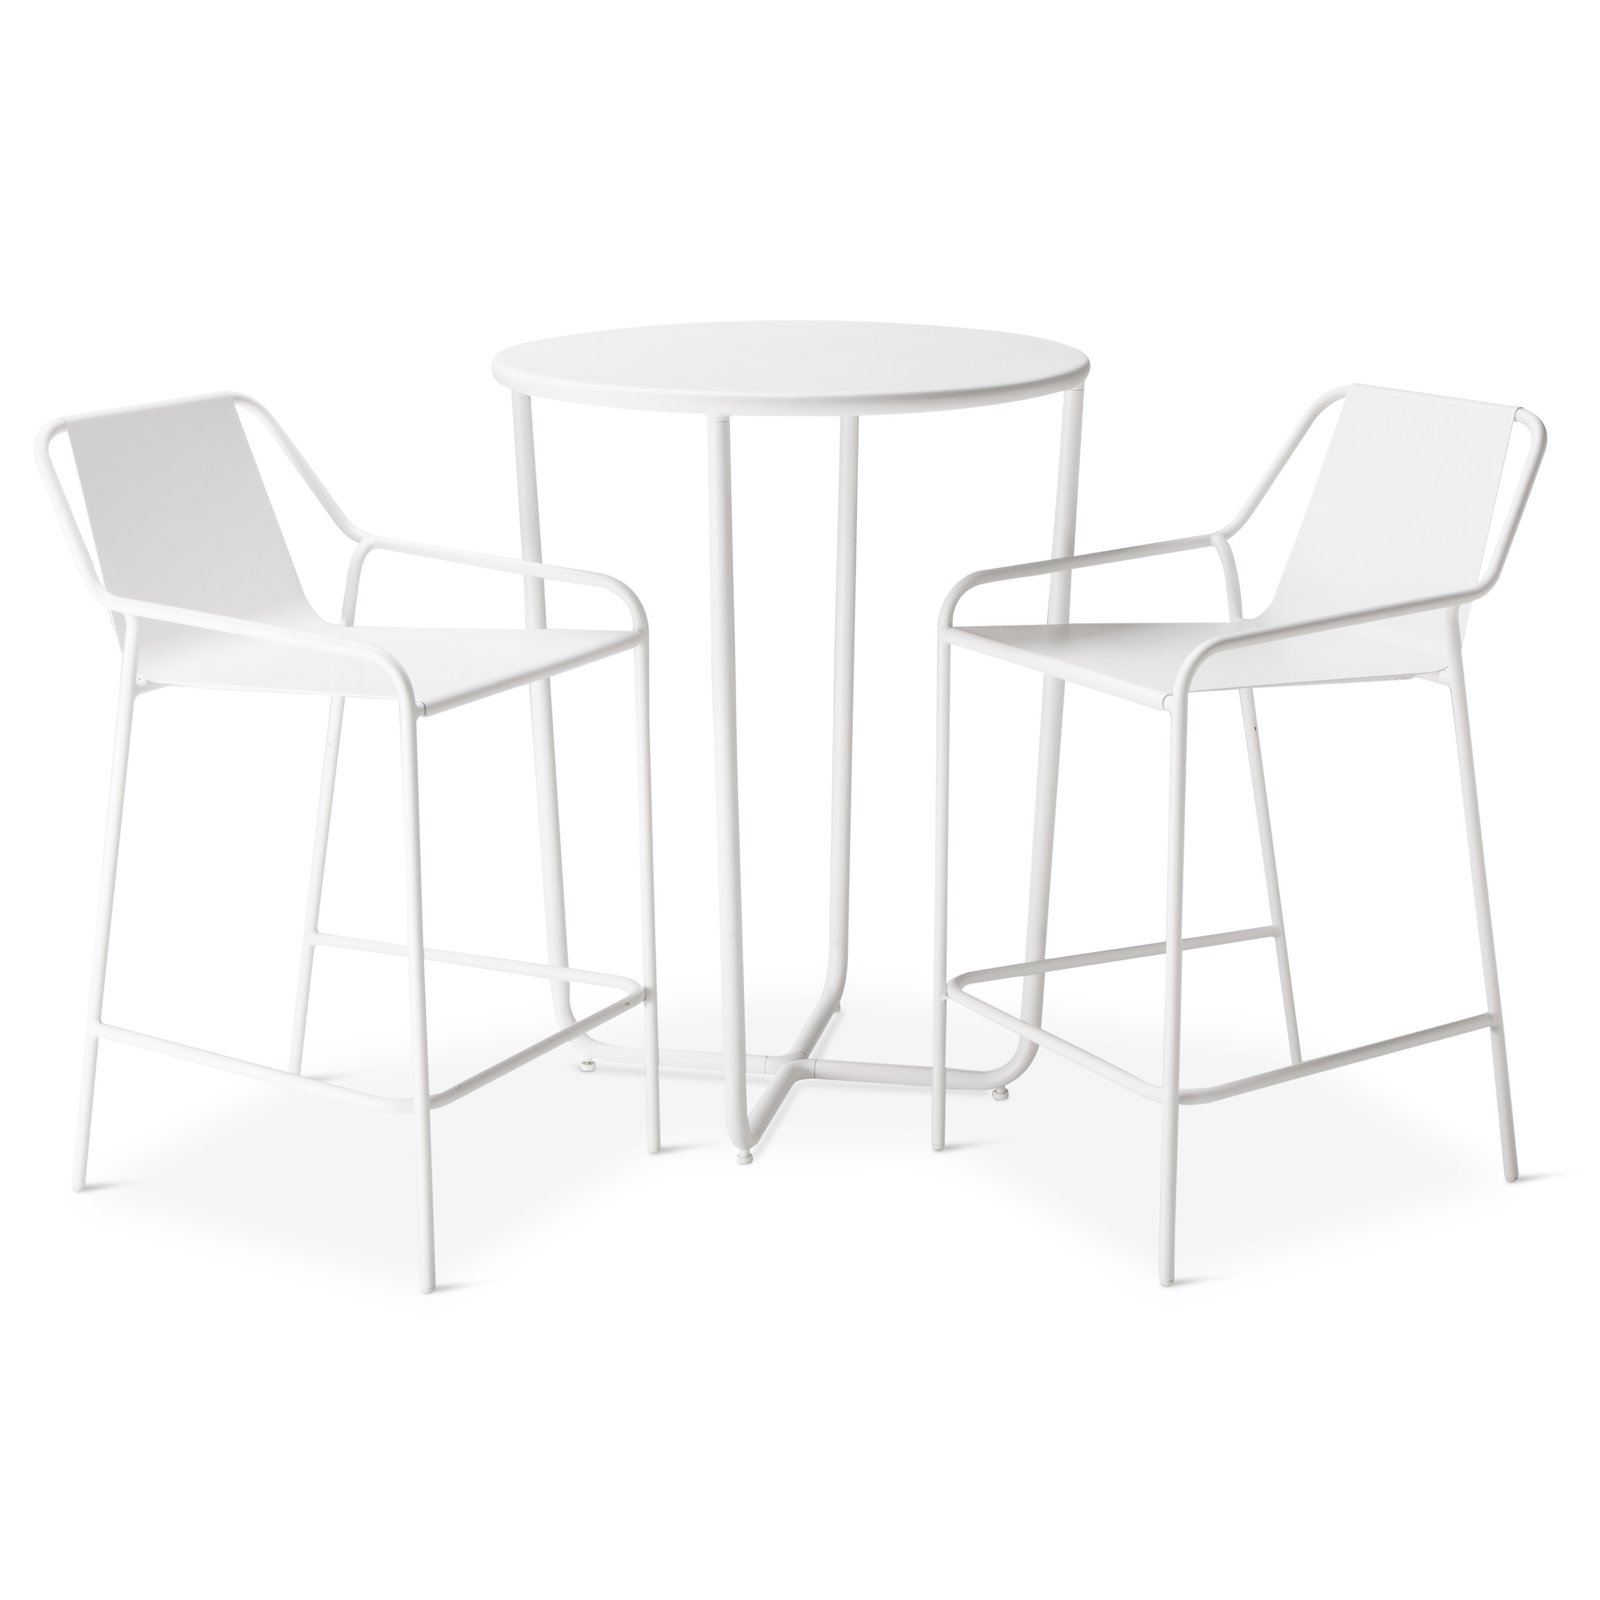 3-Piece Bar Bistro Set, $299.99; designed by Chris Deam and Nick Dine for Modern by Dwell Magazine for Target   Photo 8 of 17 in Modern by Dwell Magazine: Outdoor Collection